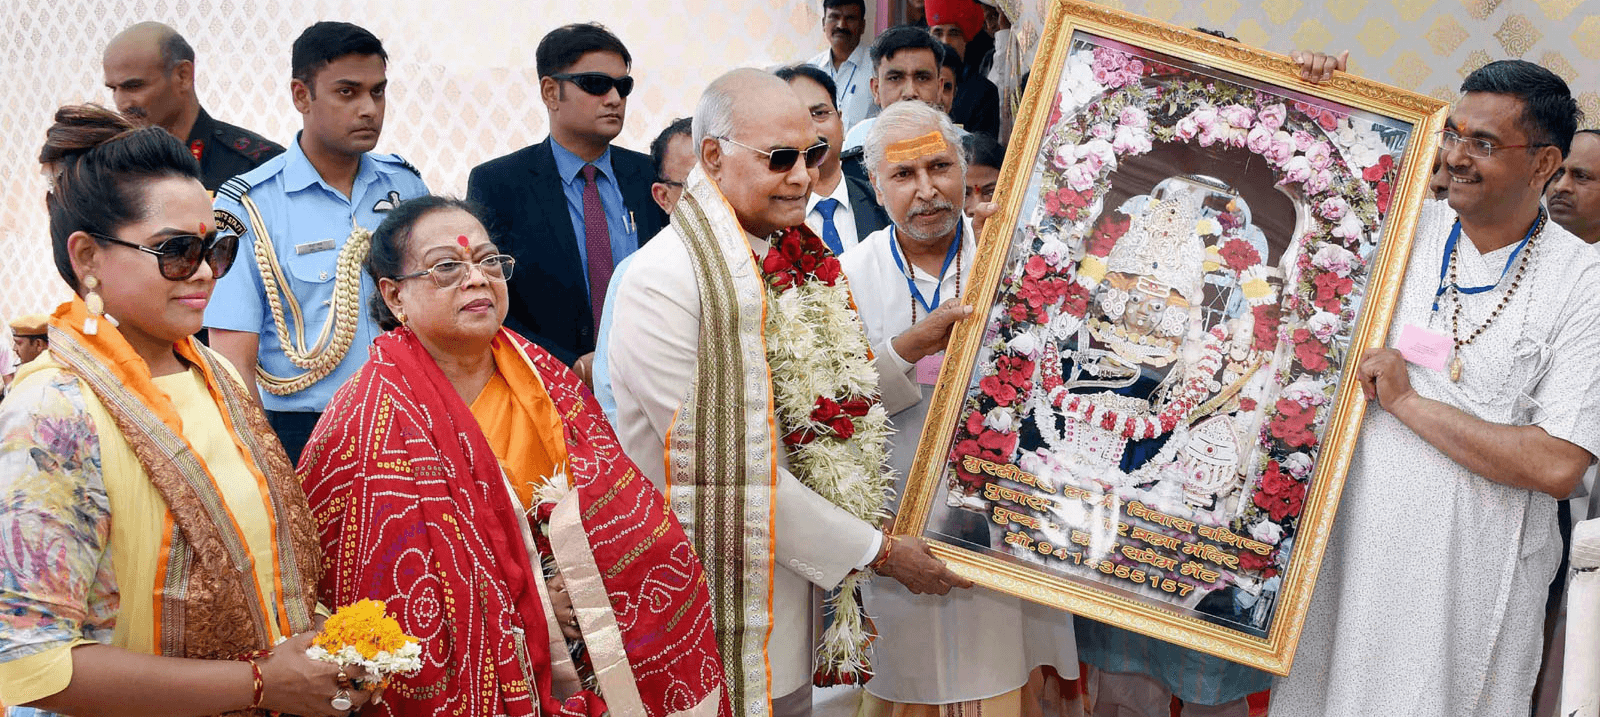 No, the President Was Not Stopped From Entering the Pushkar Temple